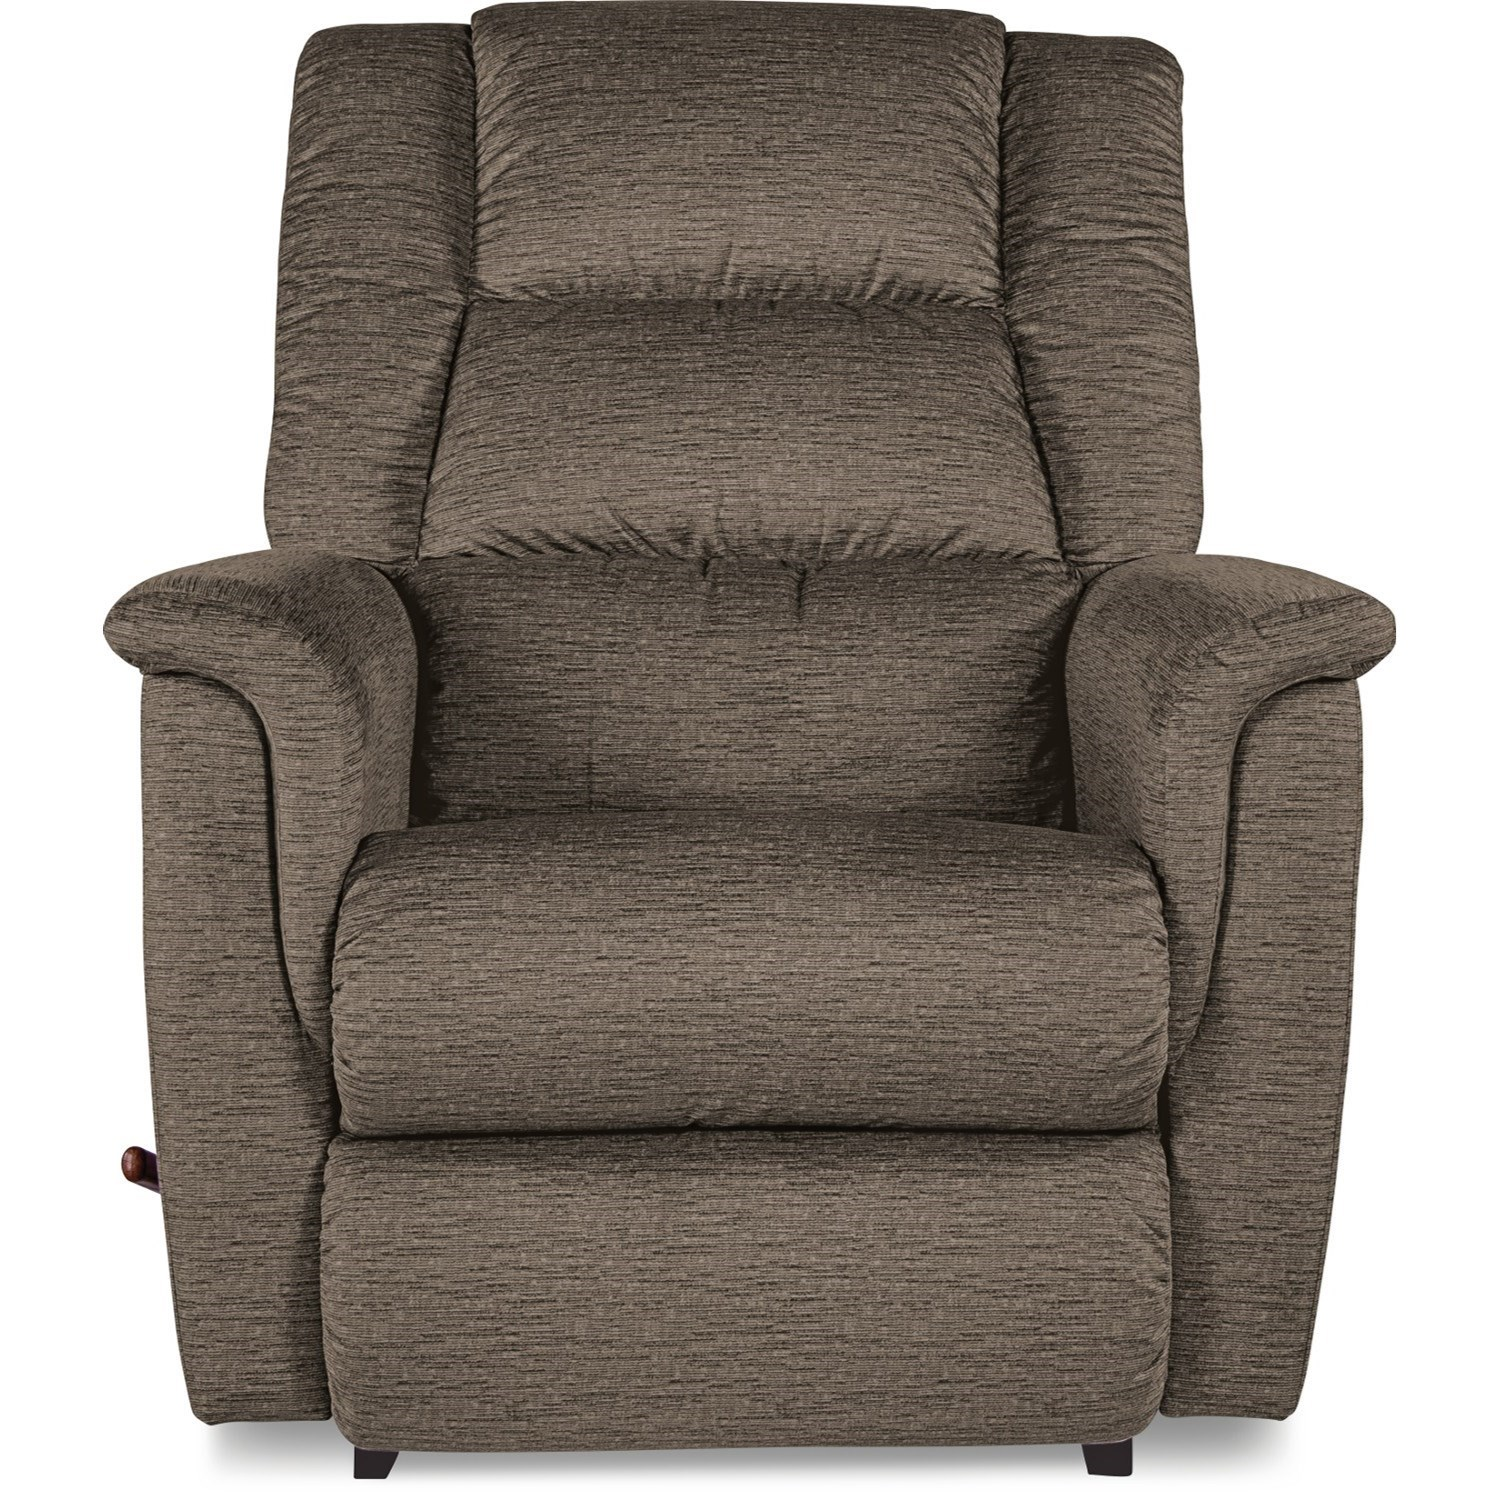 Casual Wall Saver Recliner w/ usb Charging Port